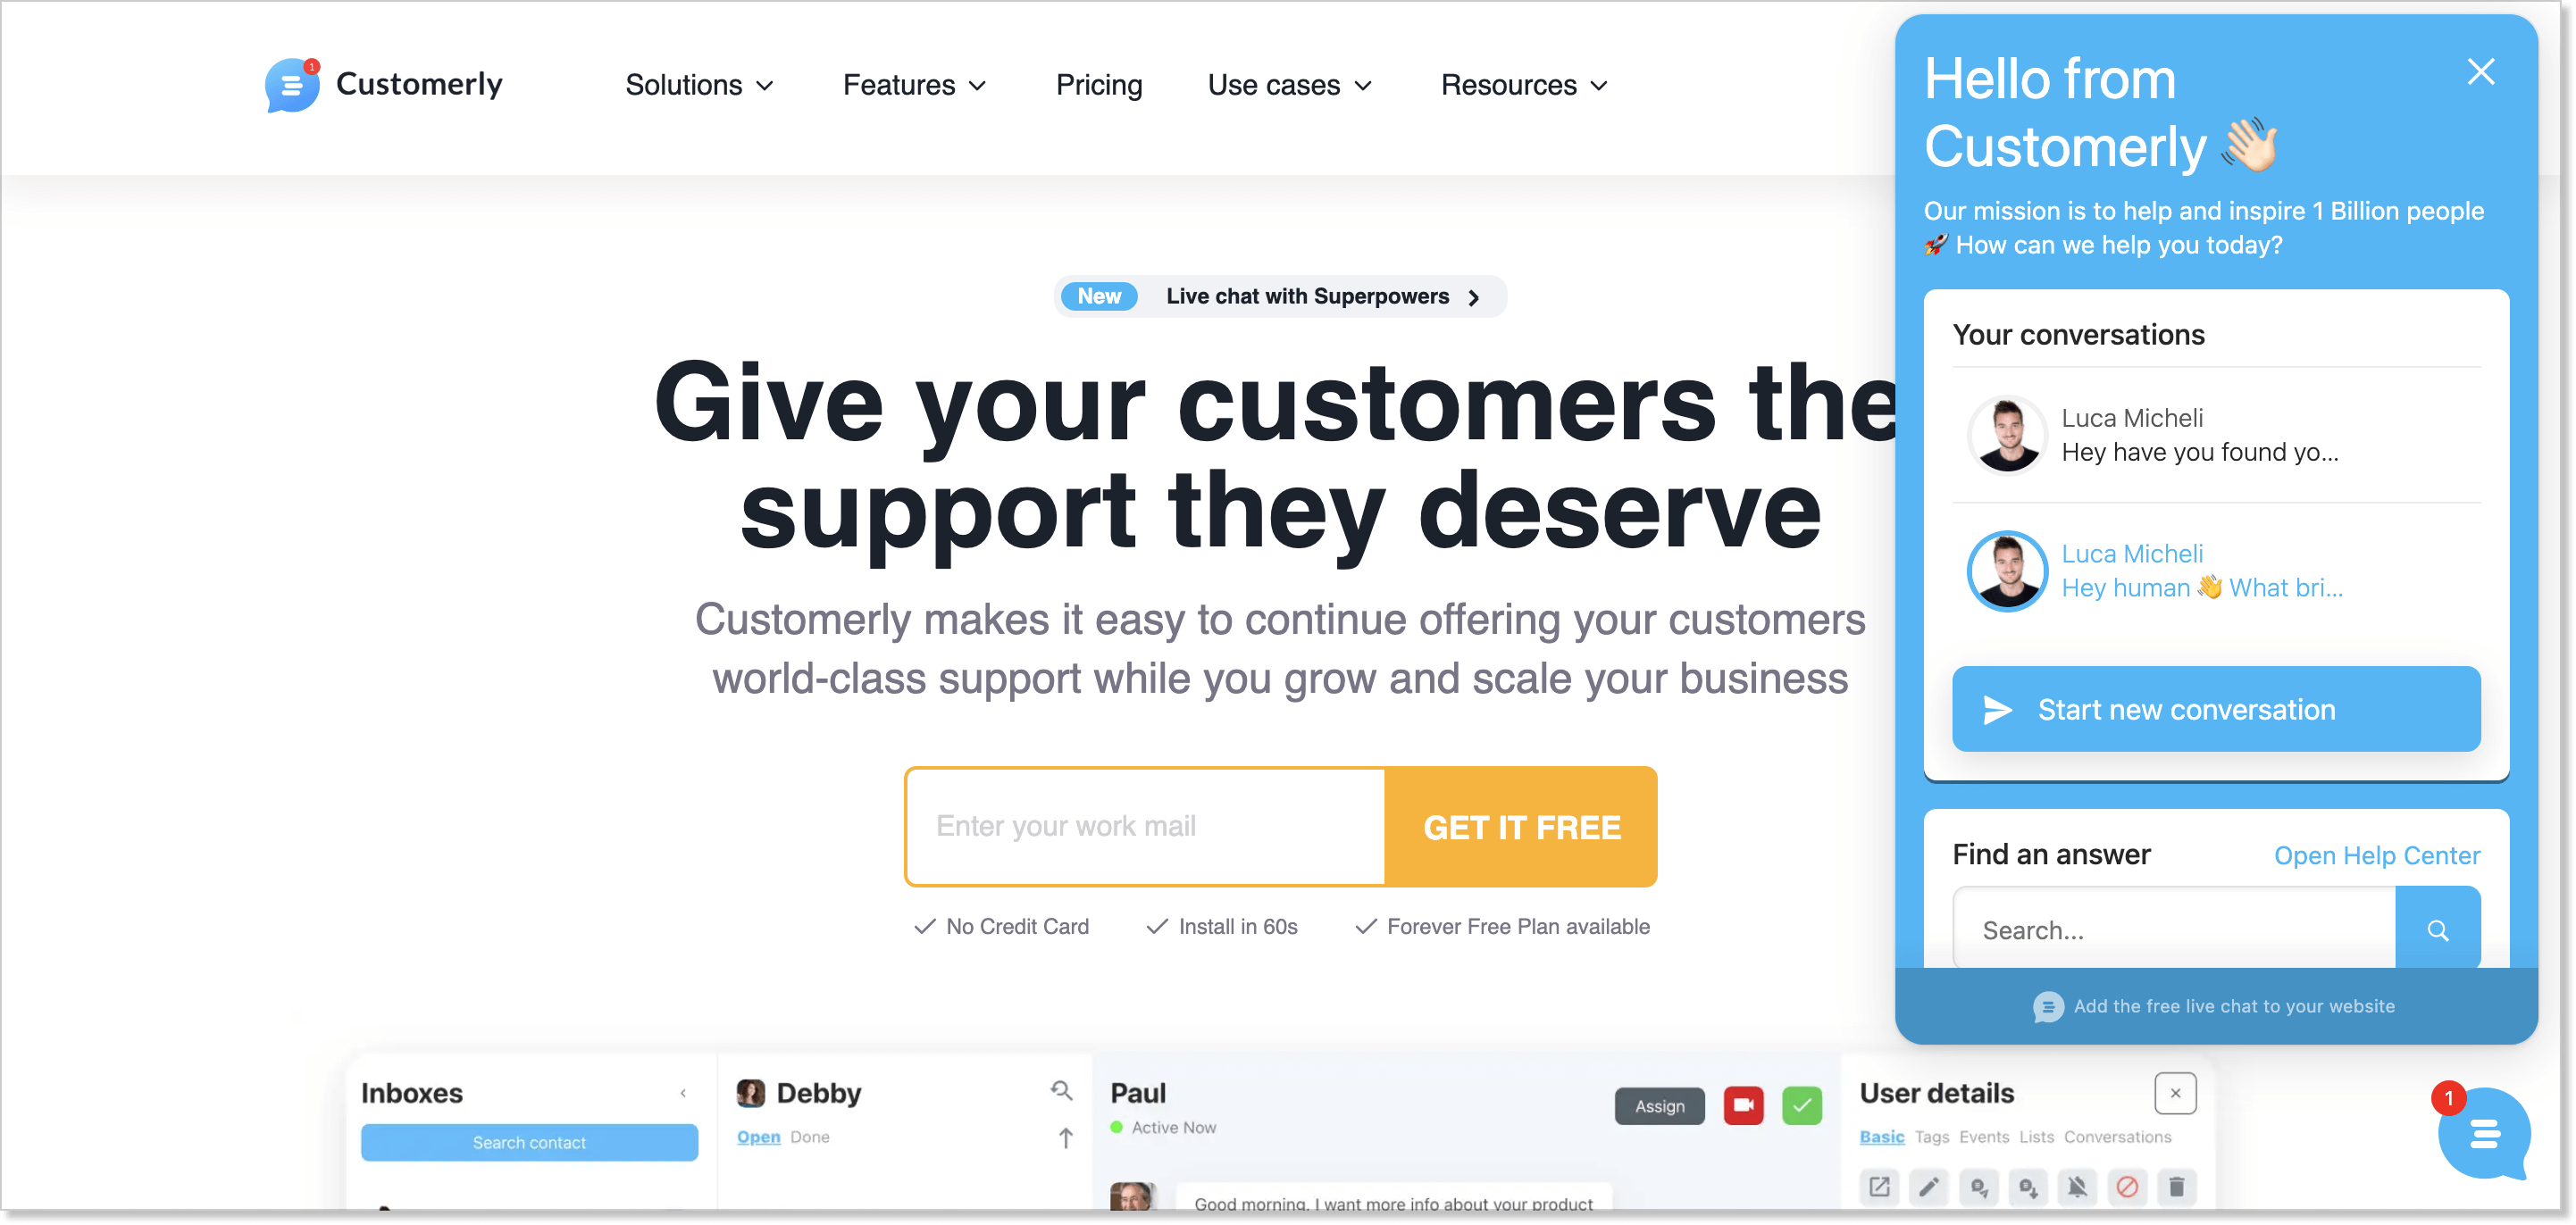 Customerly homepage with a live chat widget